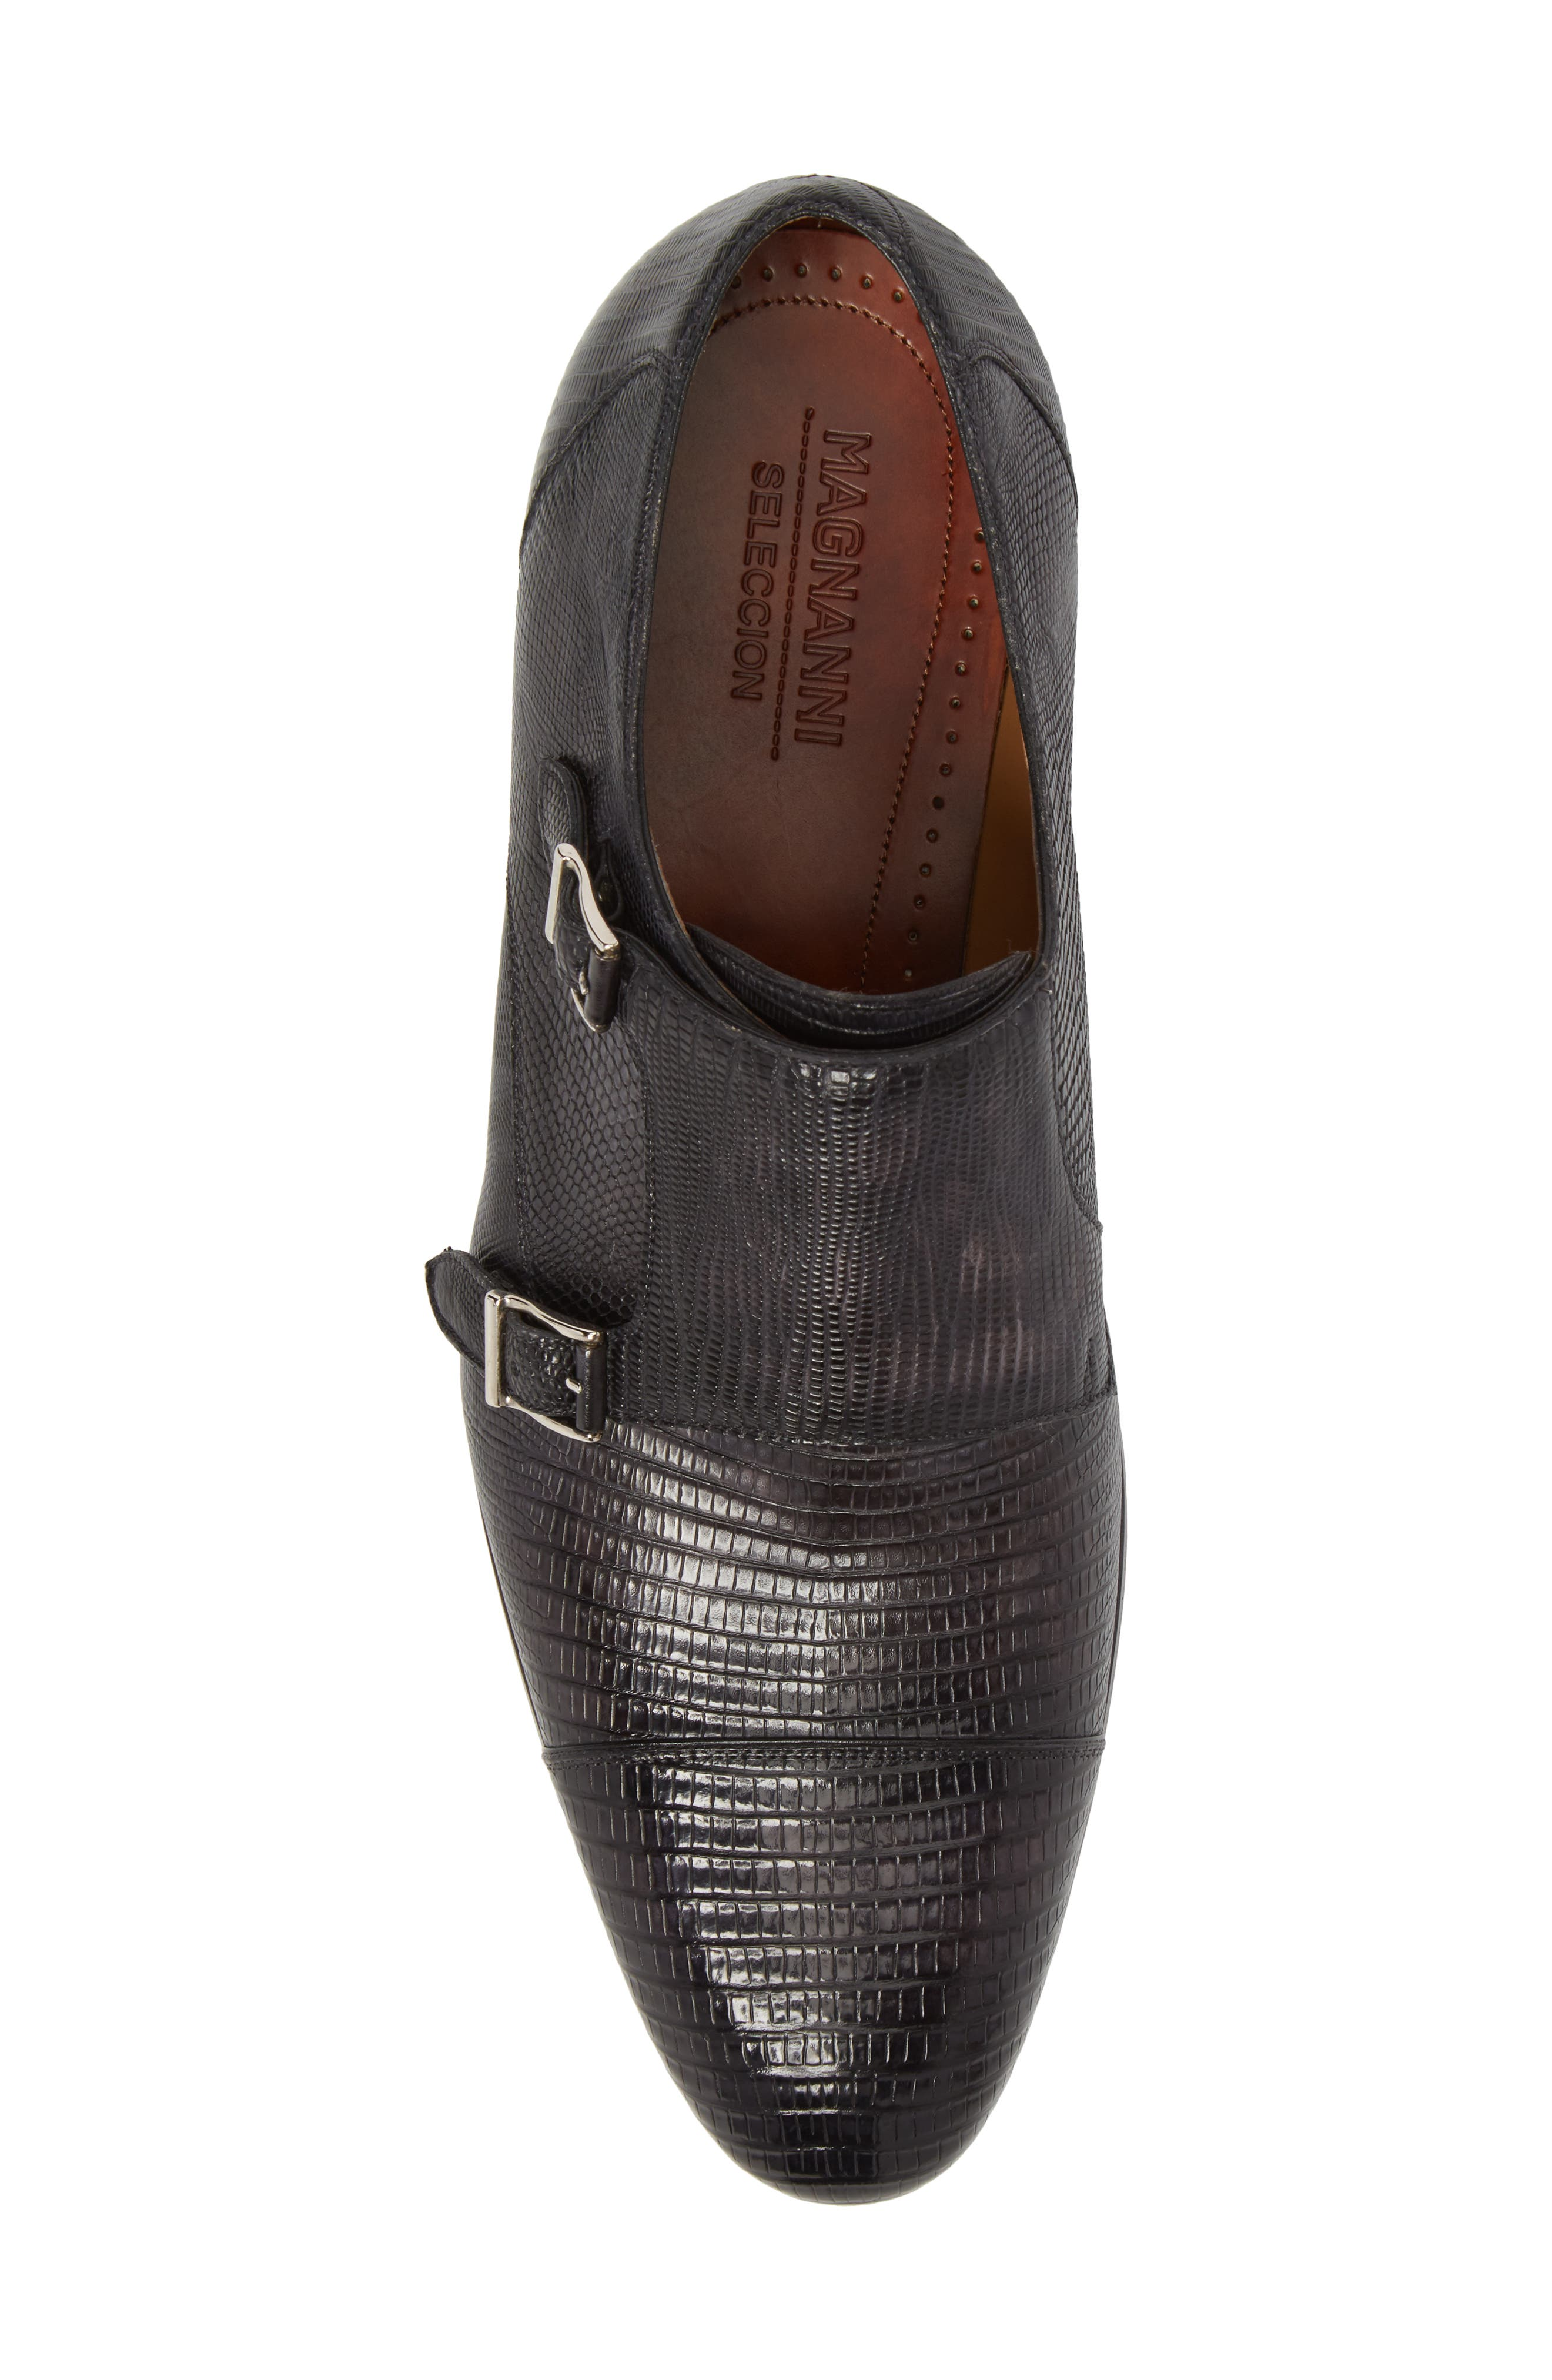 Pavo Lizard Leather Monk Shoe,                             Alternate thumbnail 5, color,                             Grey Leather